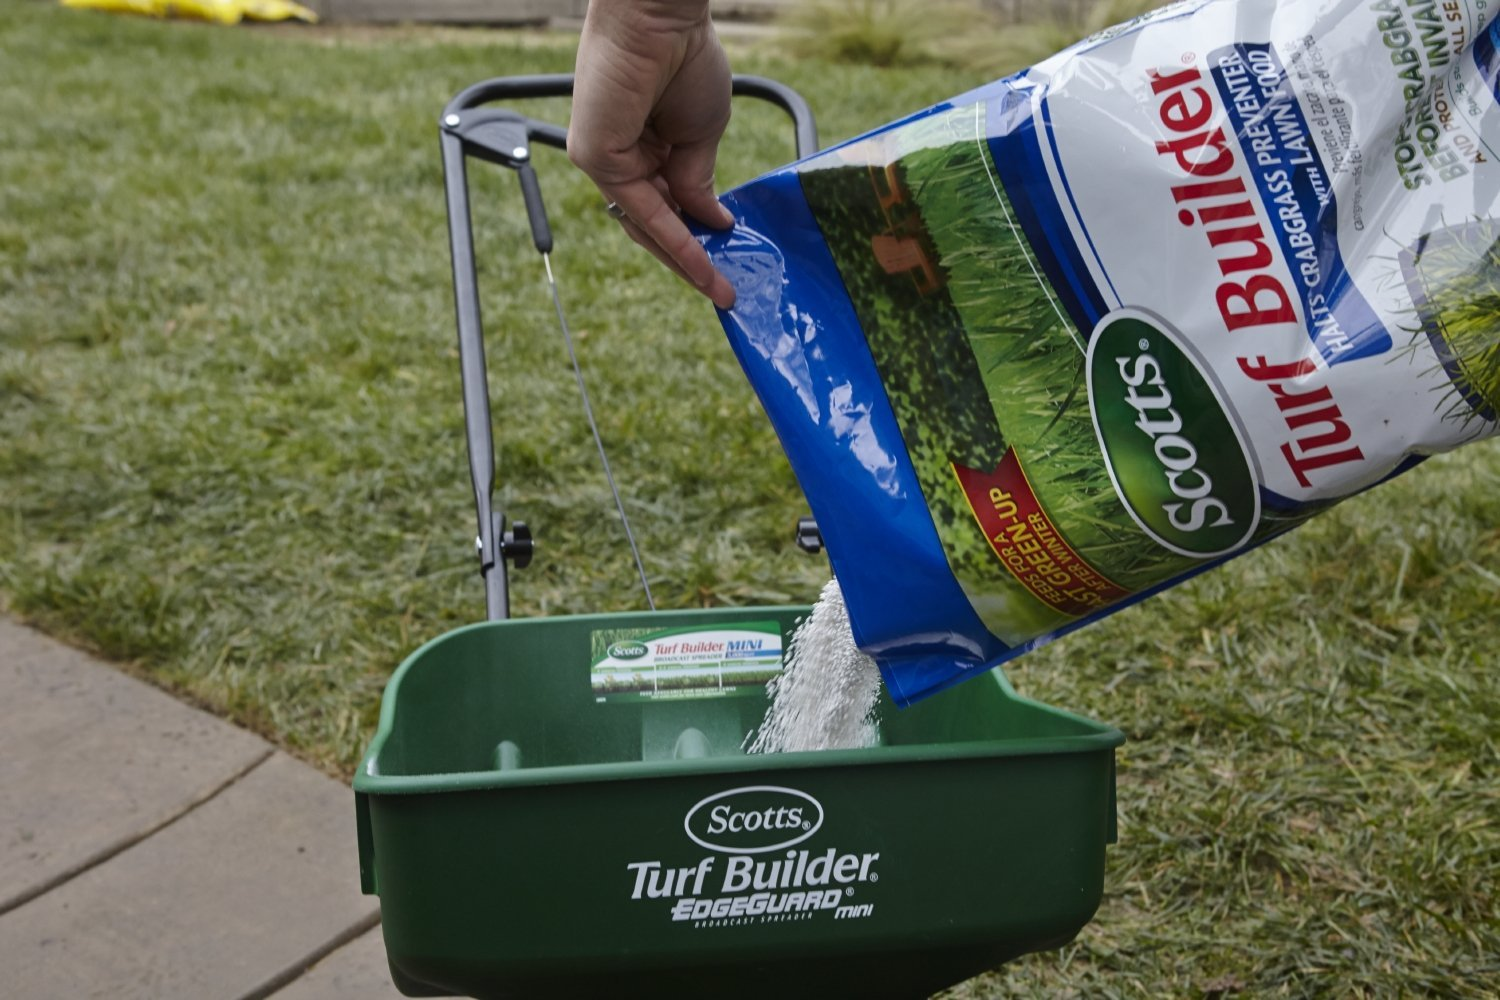 You'll want to apply this Crabgrass Preventer product in early spring.